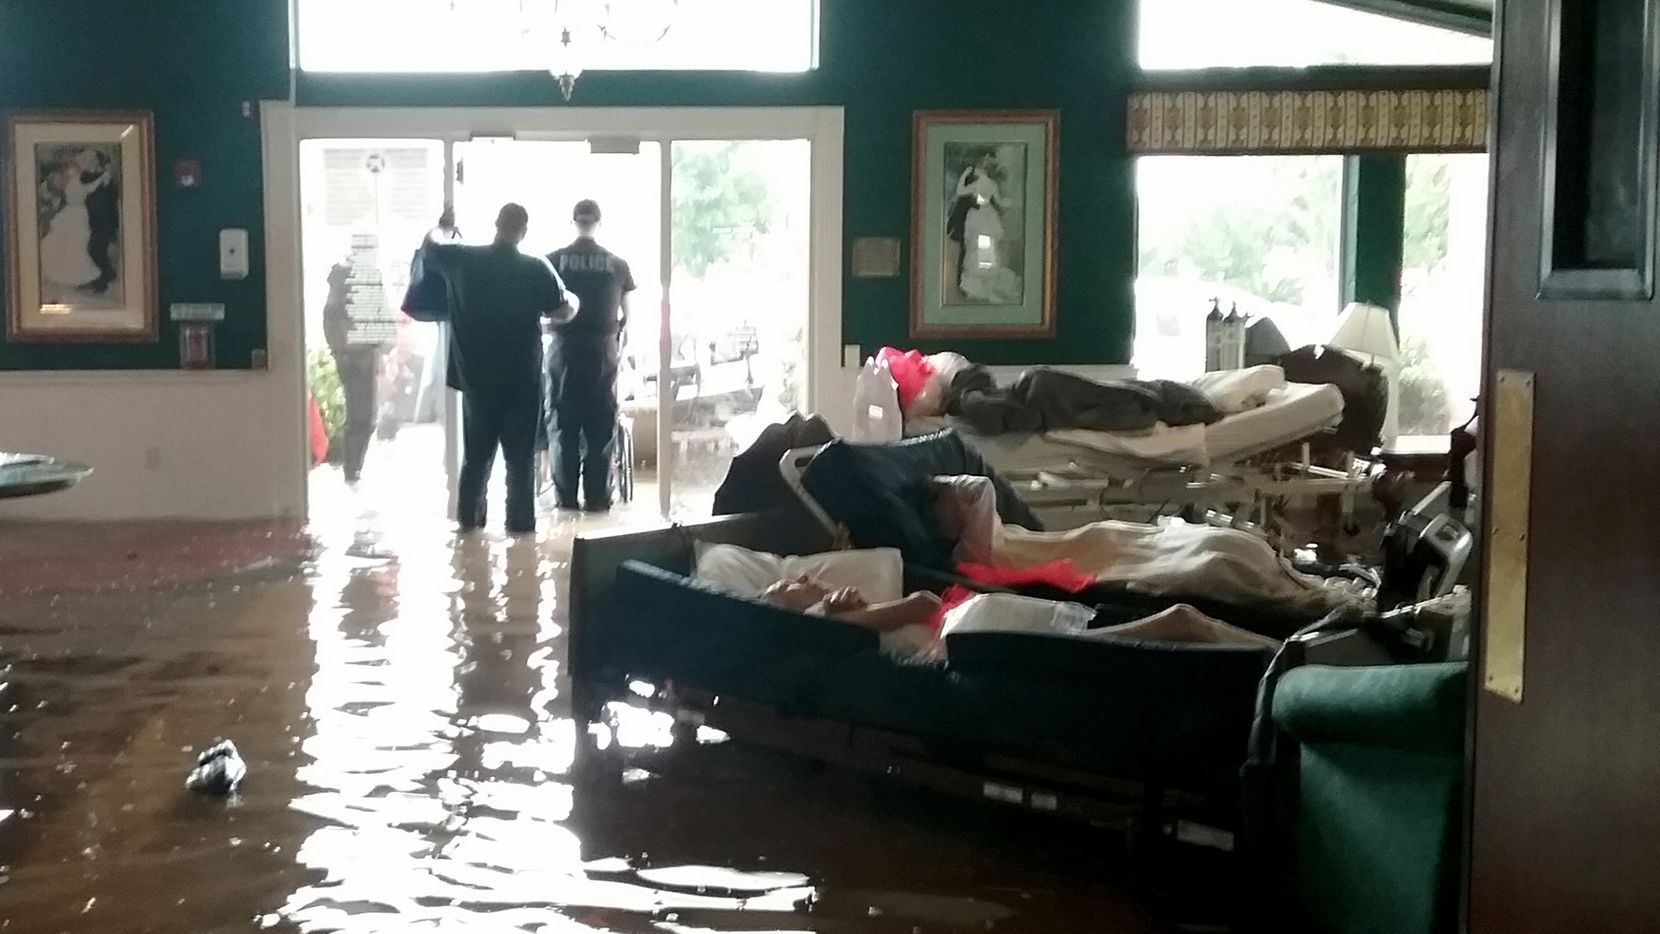 Residents lay on sofas waiting to be evacuated from the Cypress Glen senior care facility in Port Arthur last year. The care center was inundated with water from Hurricane Harvey. Cypress Glen is owned by Dallas-based Senior Care Centers. (Matt Pearce/Los Angeles Times)